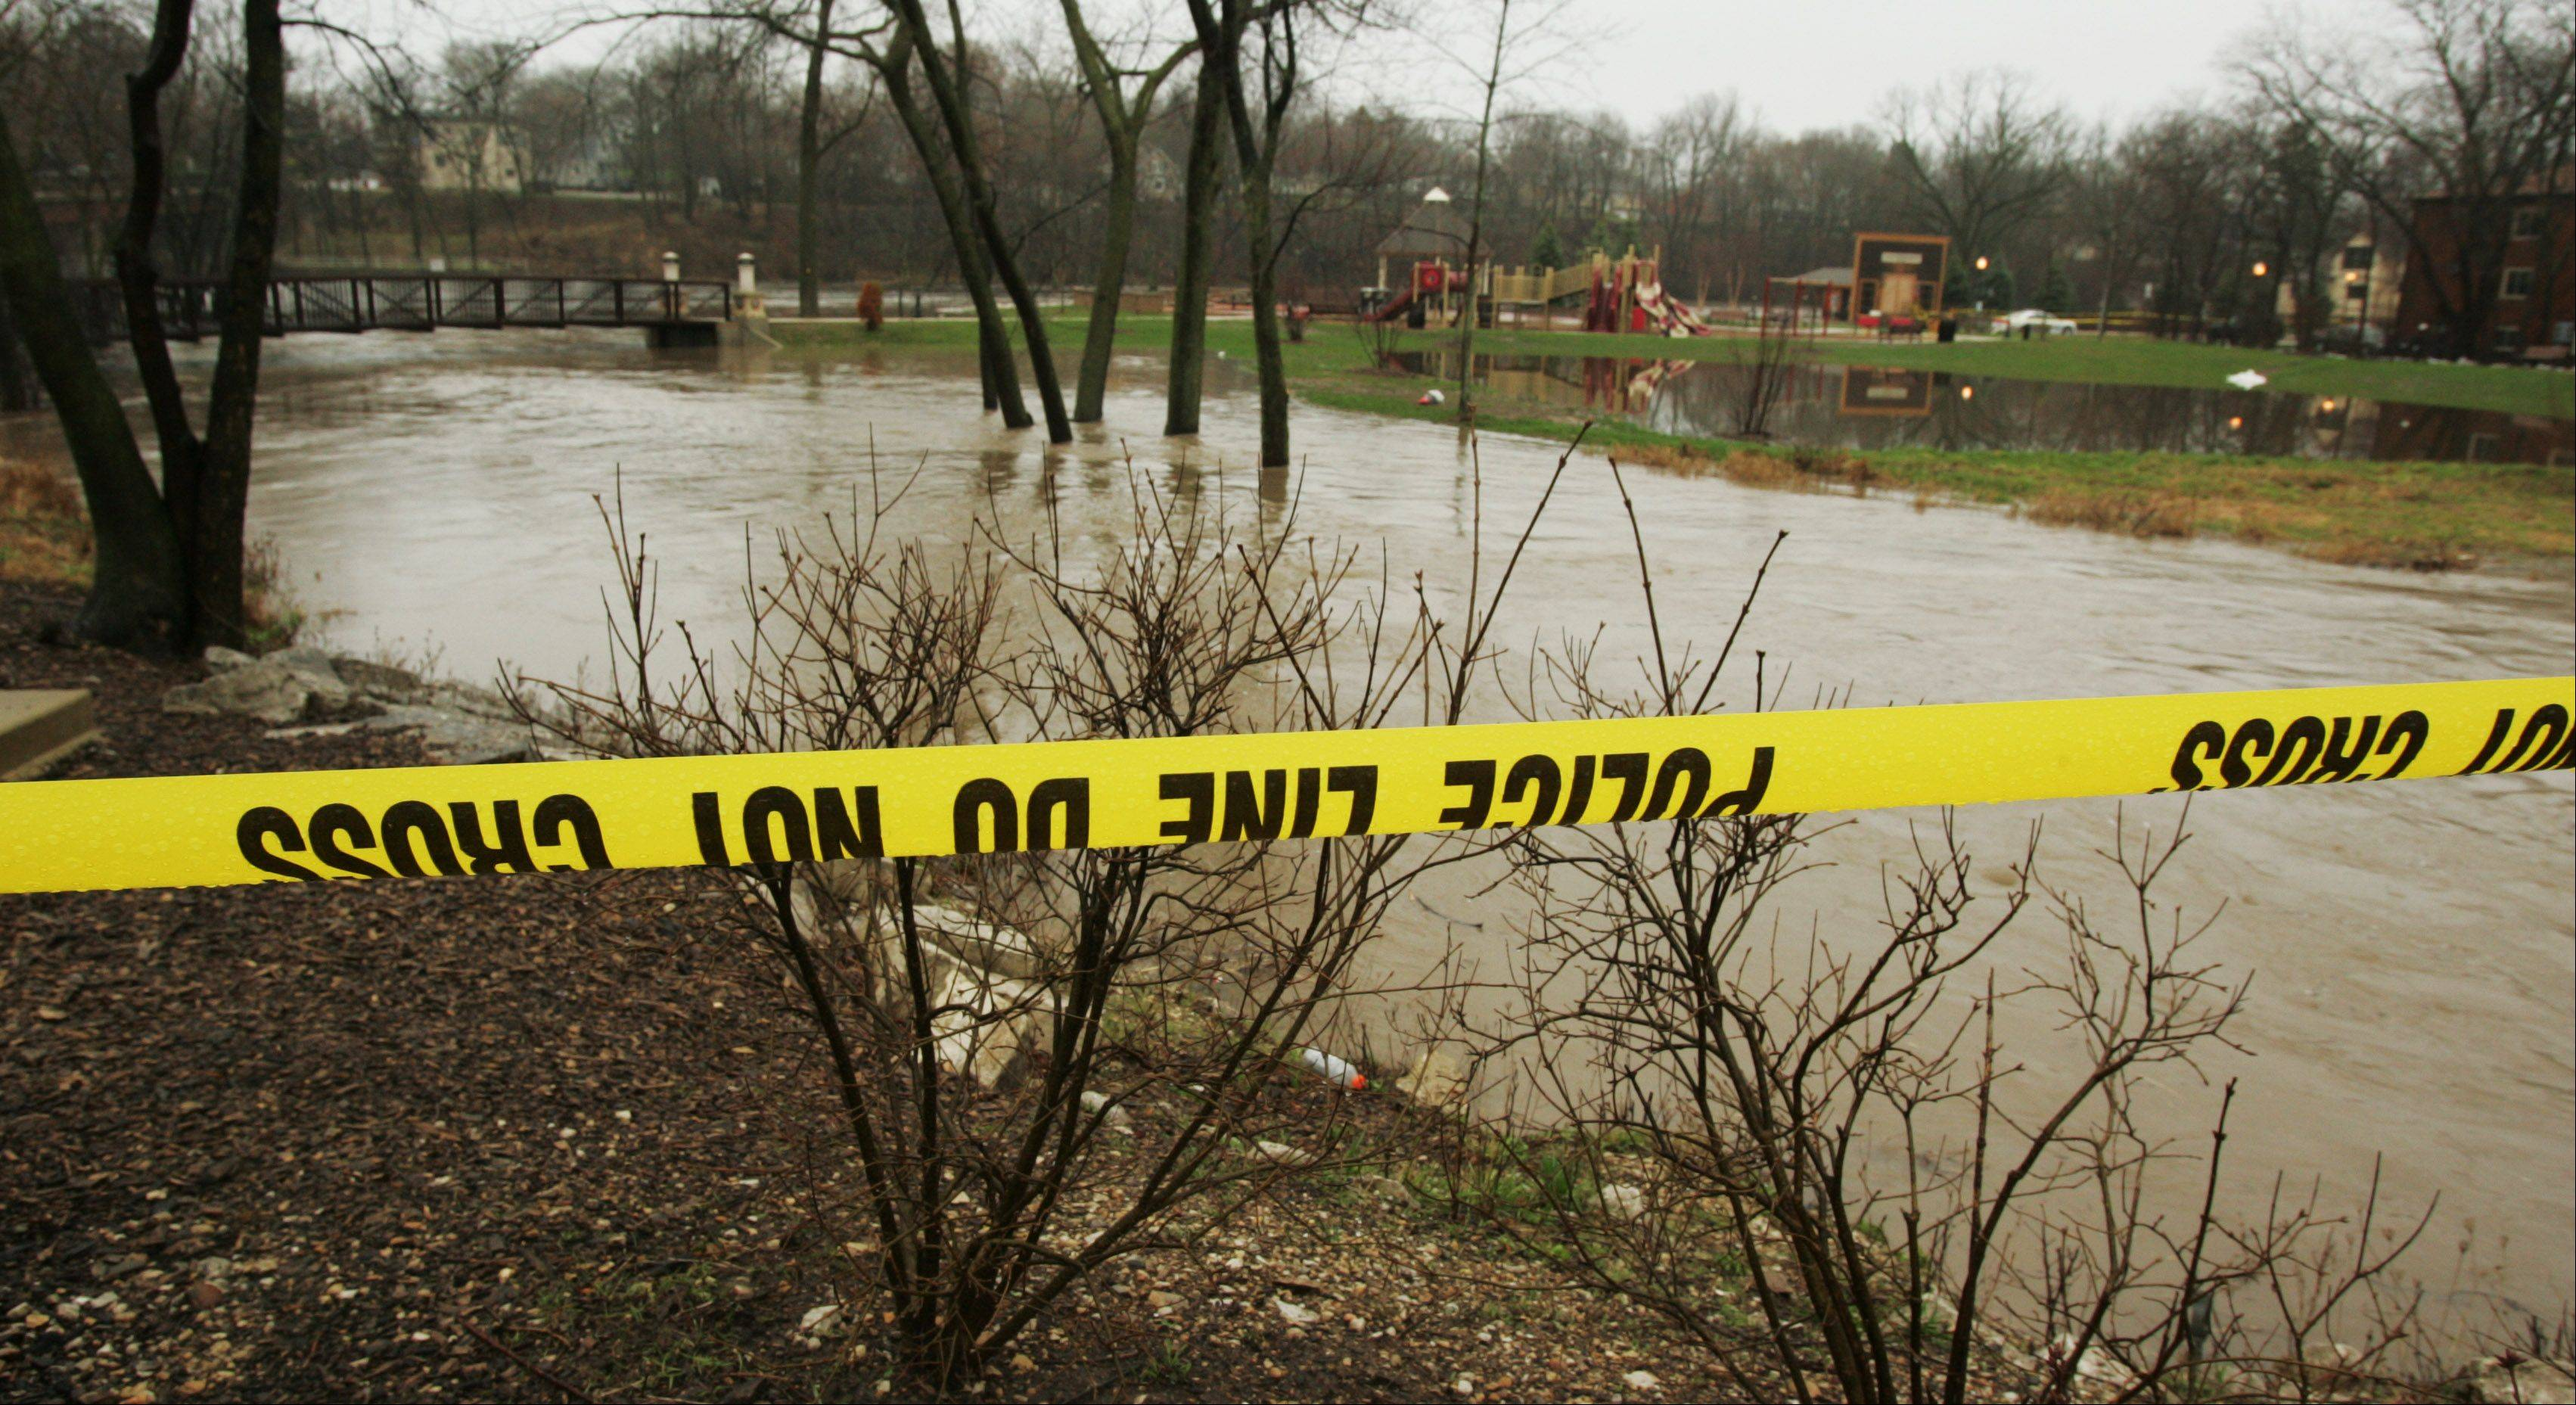 Towne Park in Algonquin was closed by police after floodwaters from the Fox River and a nearby creek filled most of the park with water.